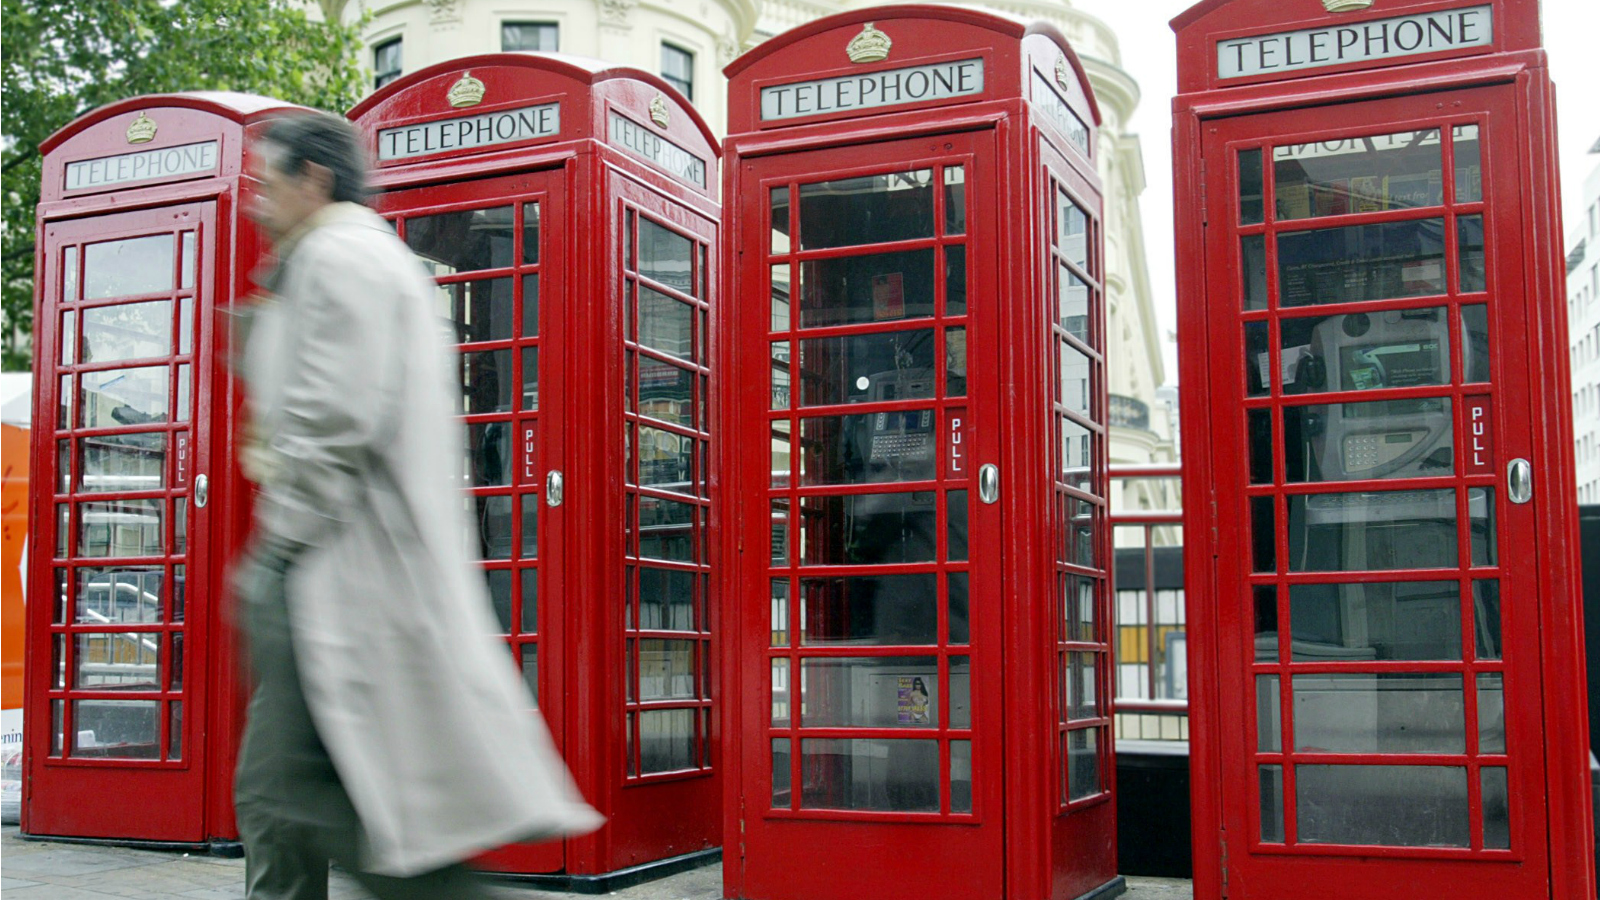 Britain's classic red telephone boxes get a new life   CNN